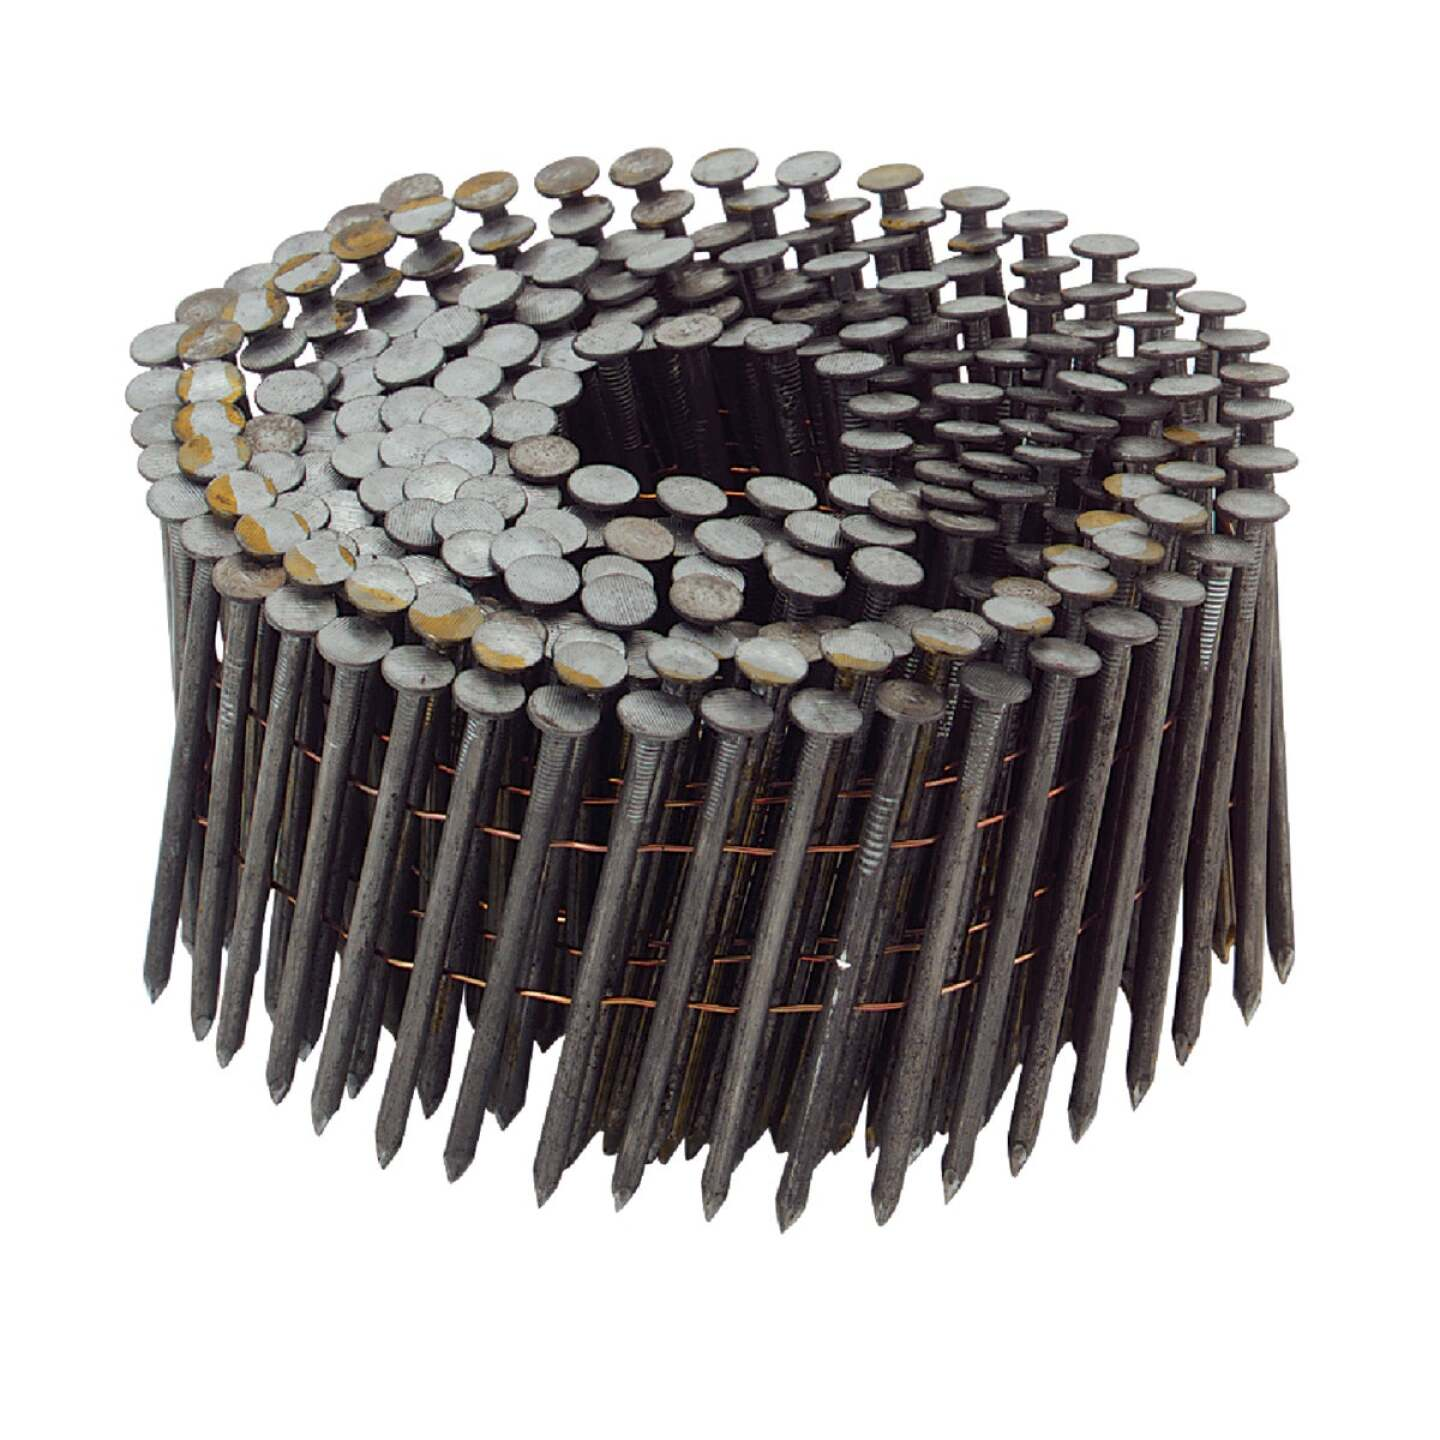 Bostitch 15 Degree Wire Weld Coated Coil Framing Nail, 2-1/2 In. x .120 In. (2700 Ct.) Image 2